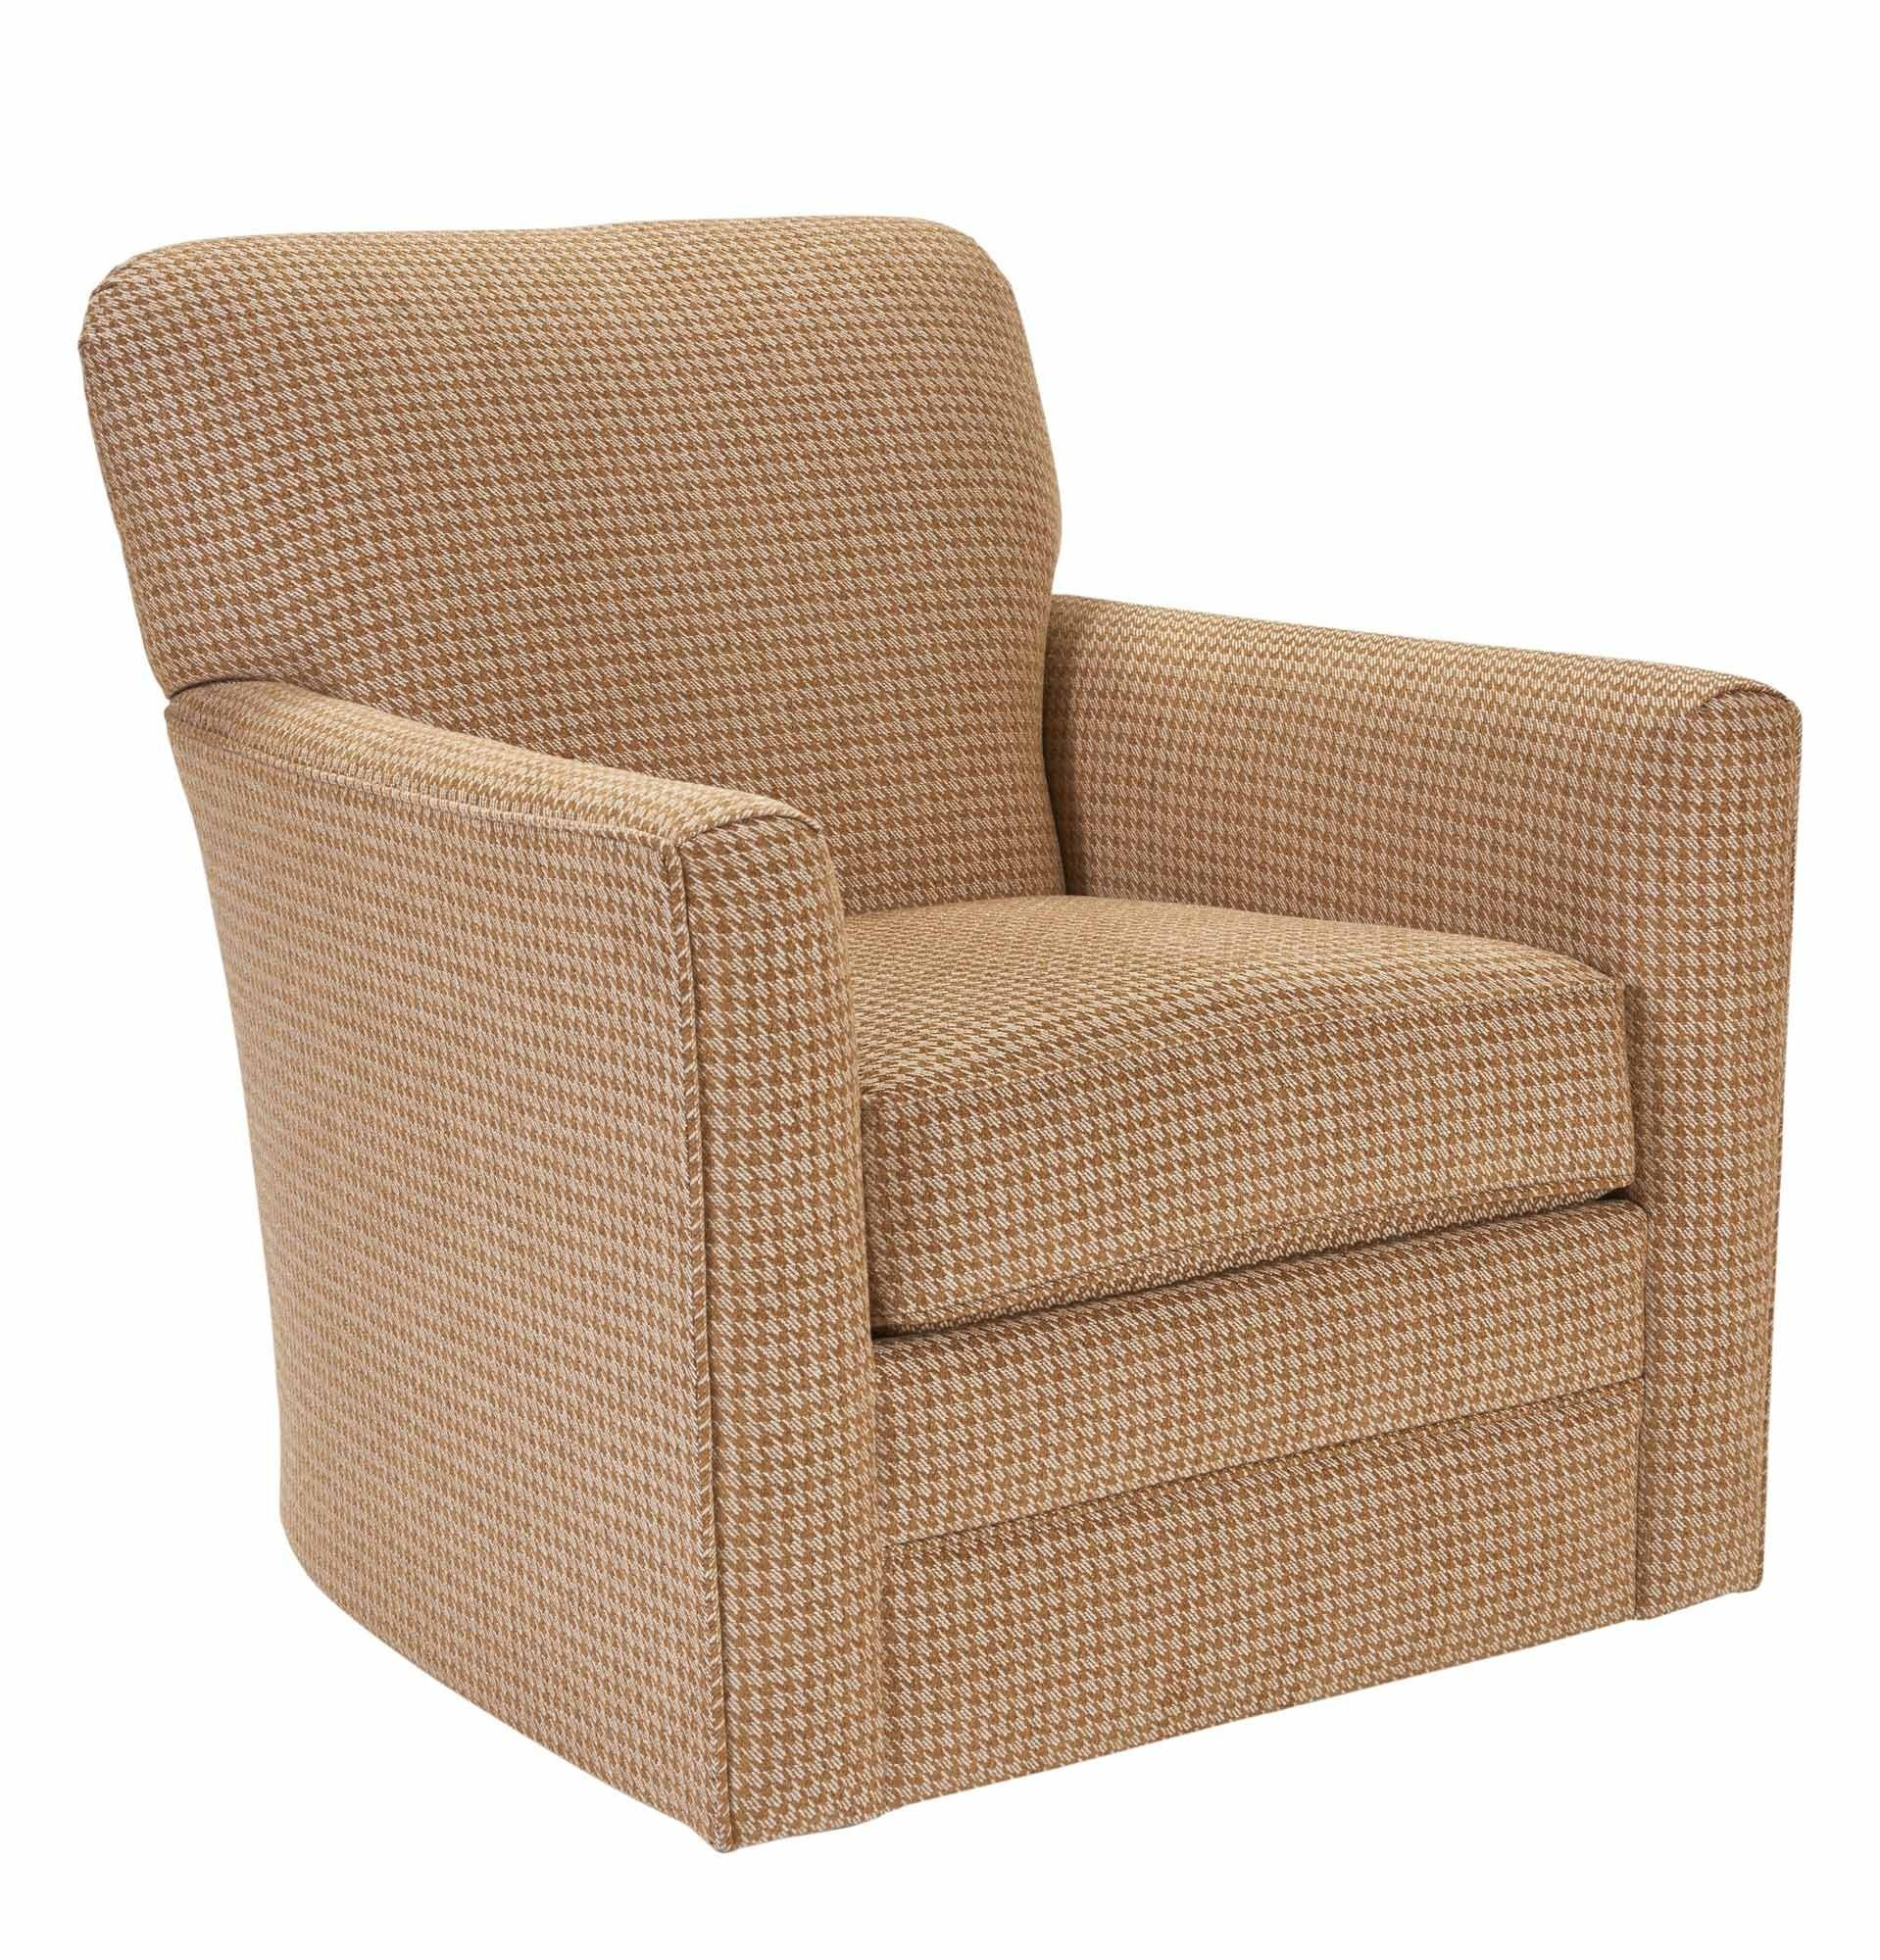 Pleasant Becks Swivel Chair Broyhill Home Gallery Stores Andrewgaddart Wooden Chair Designs For Living Room Andrewgaddartcom